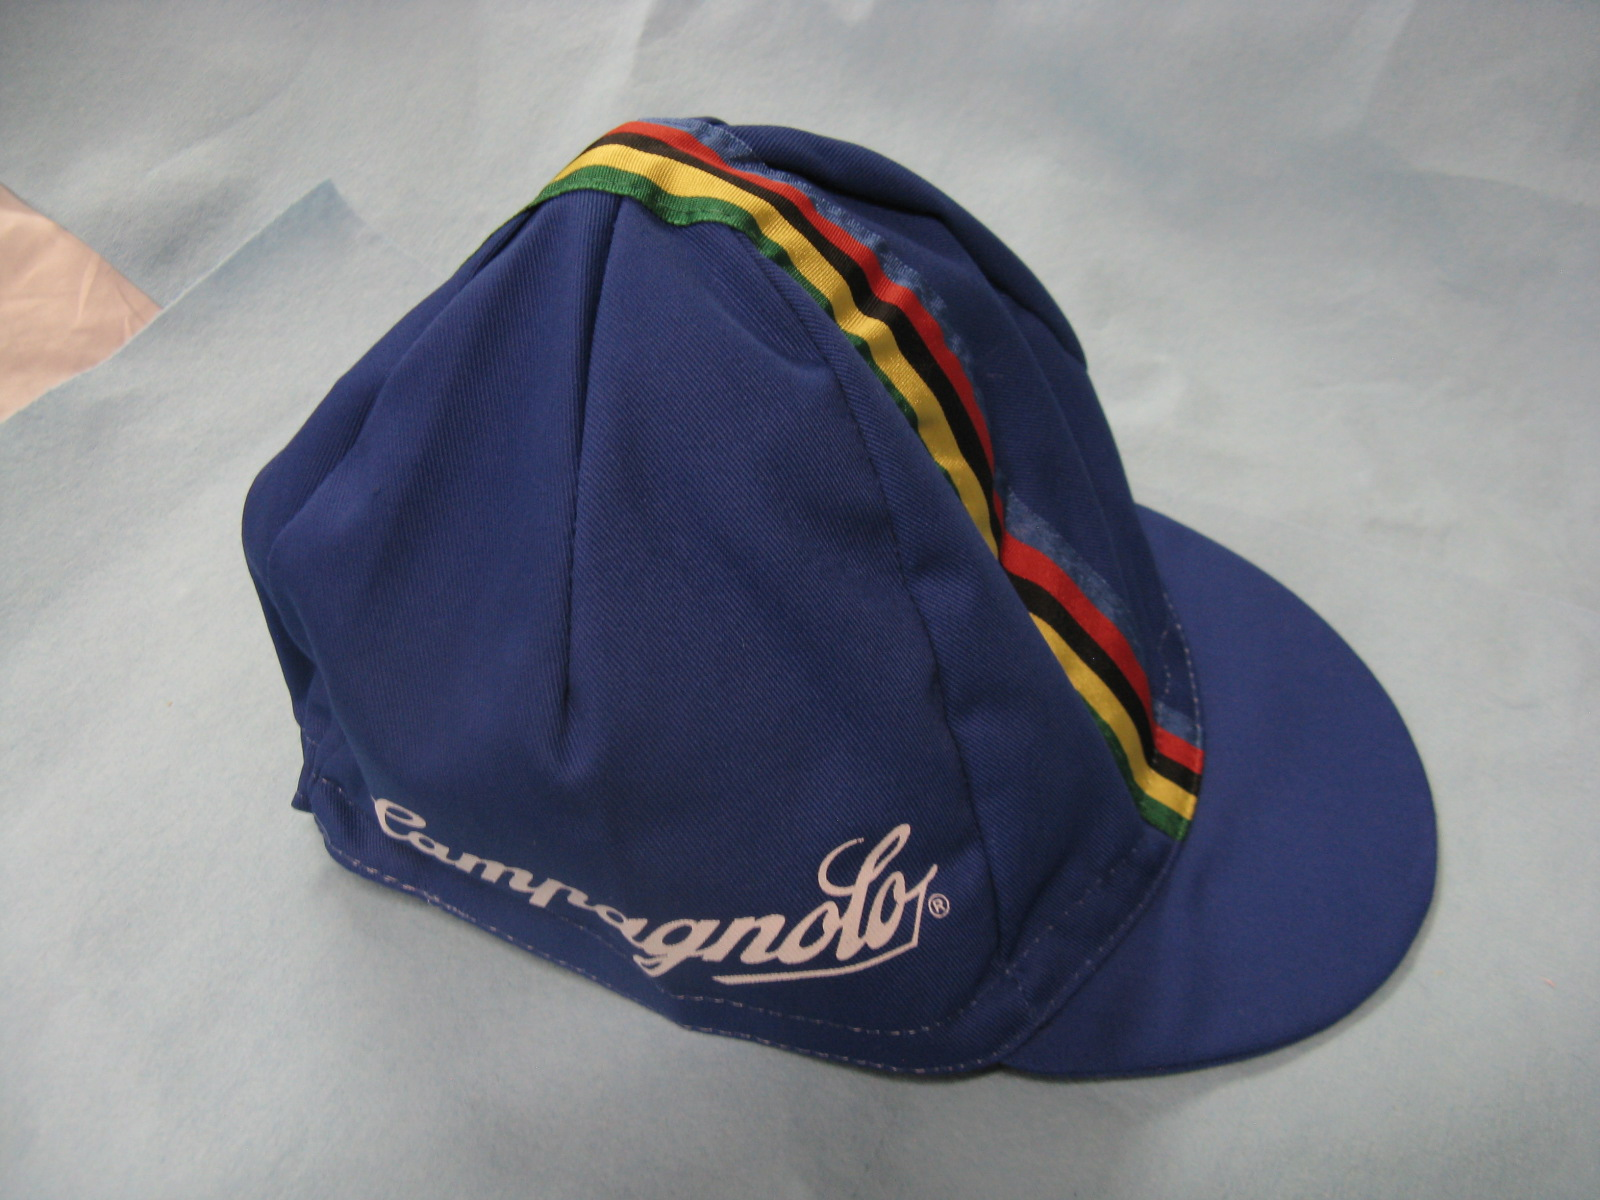 cagnolo cycling cap blue way cool